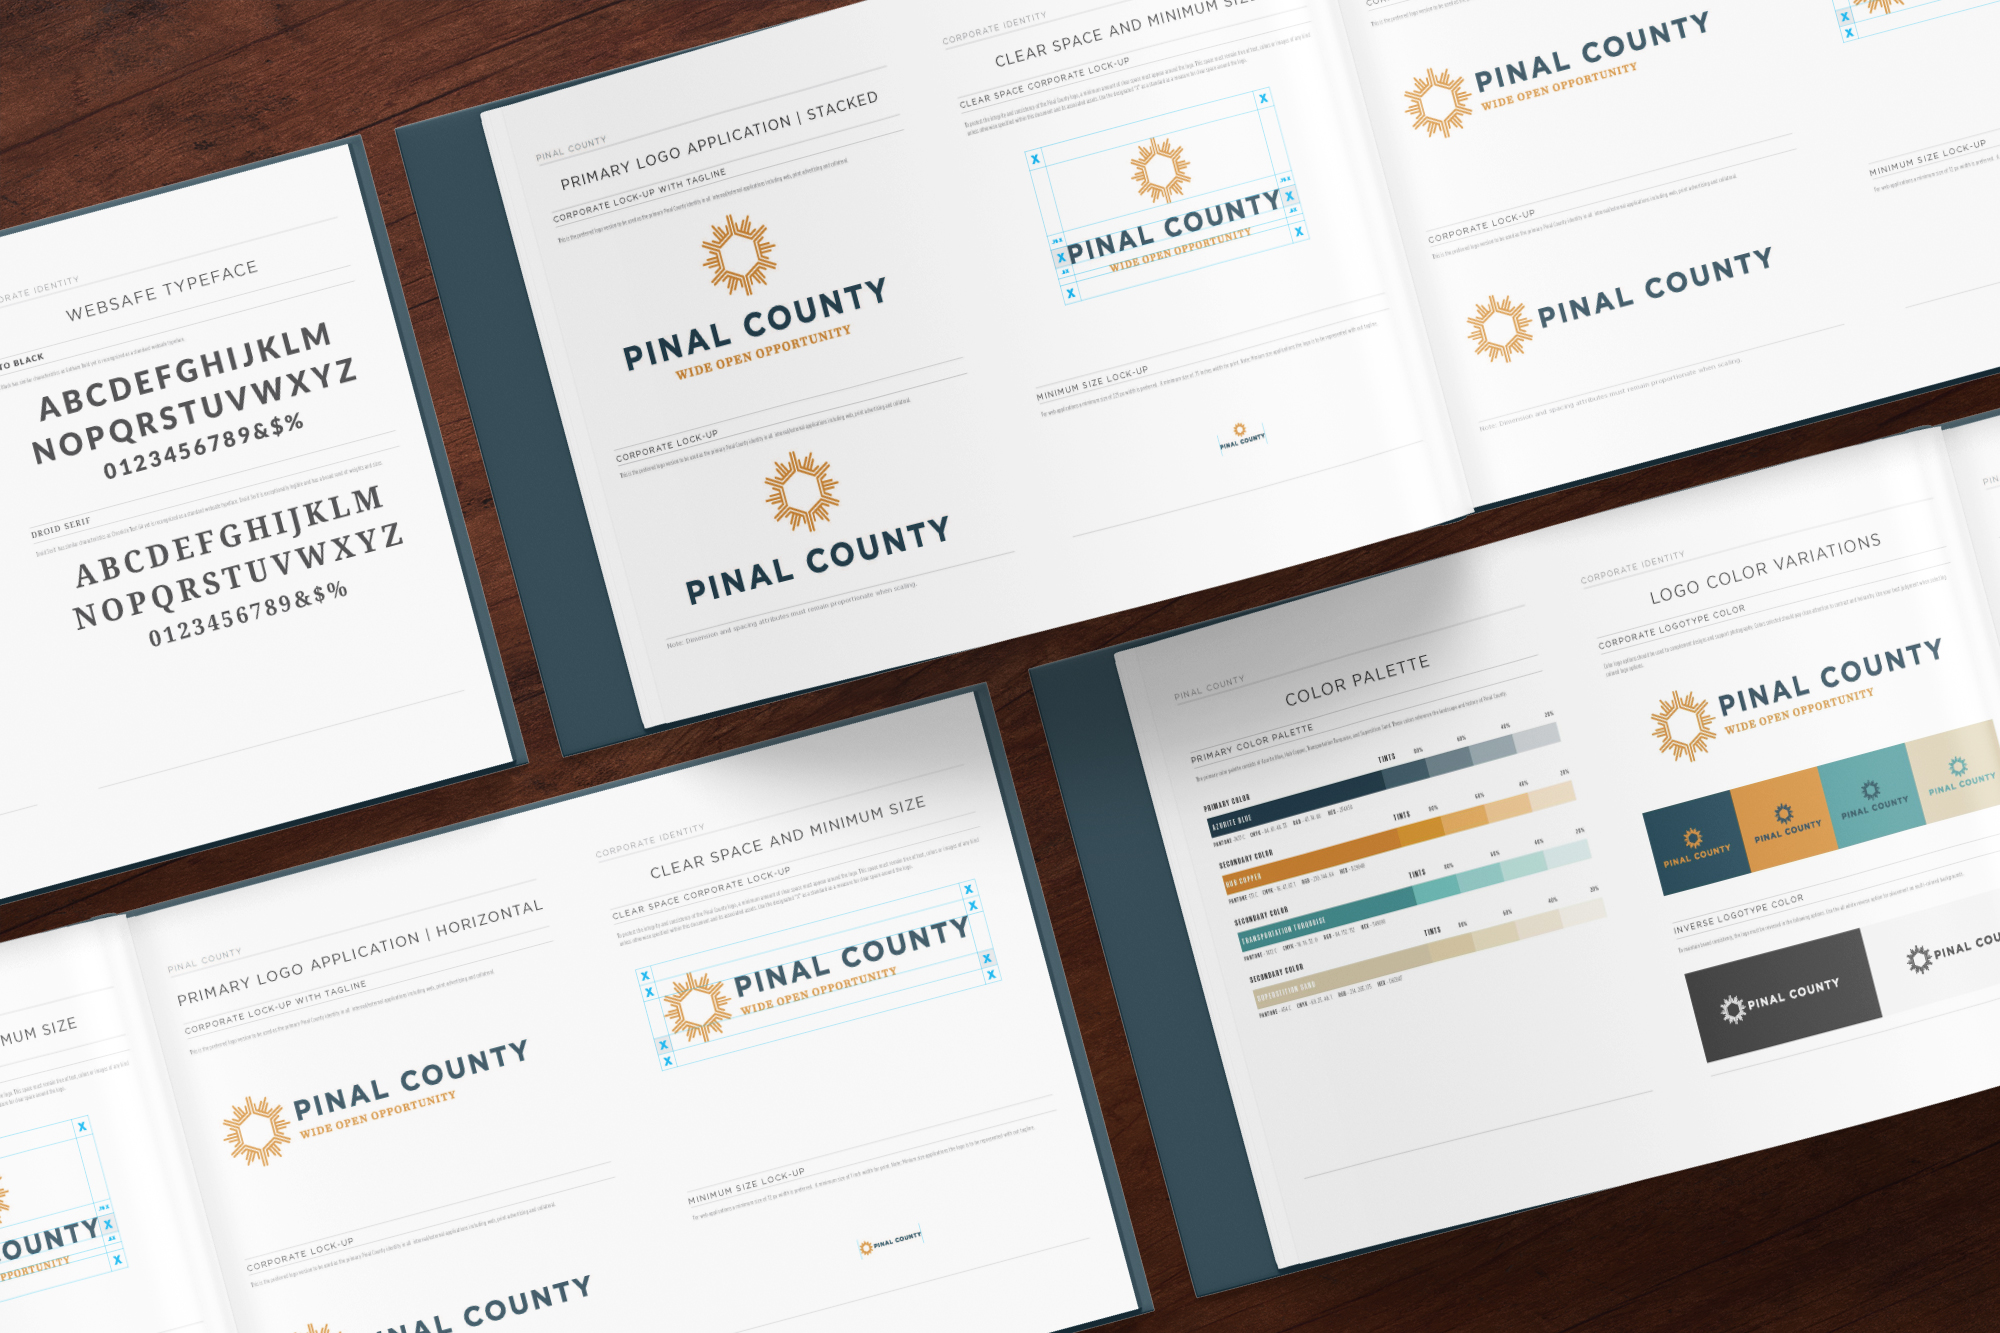 Pinal County brand book